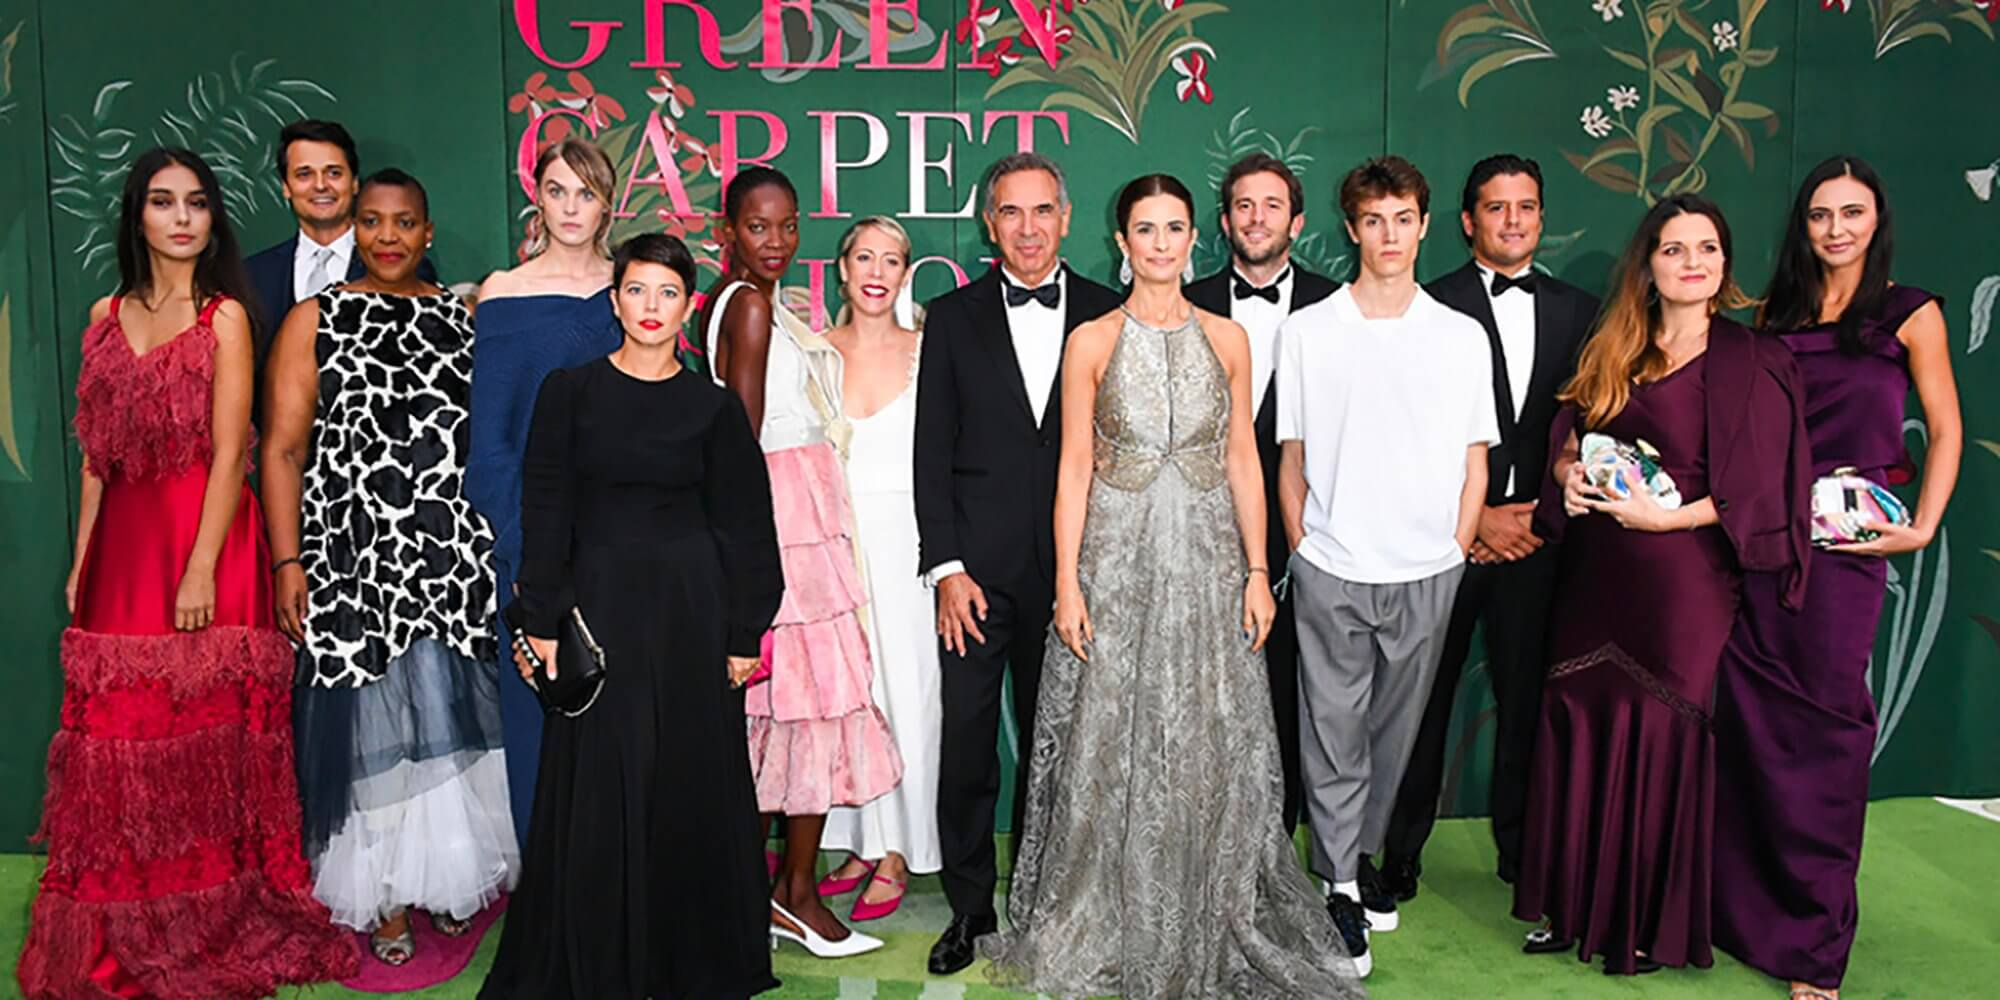 green carpet fashion awards 2019 designers ECONOMIA CIRCOLARE